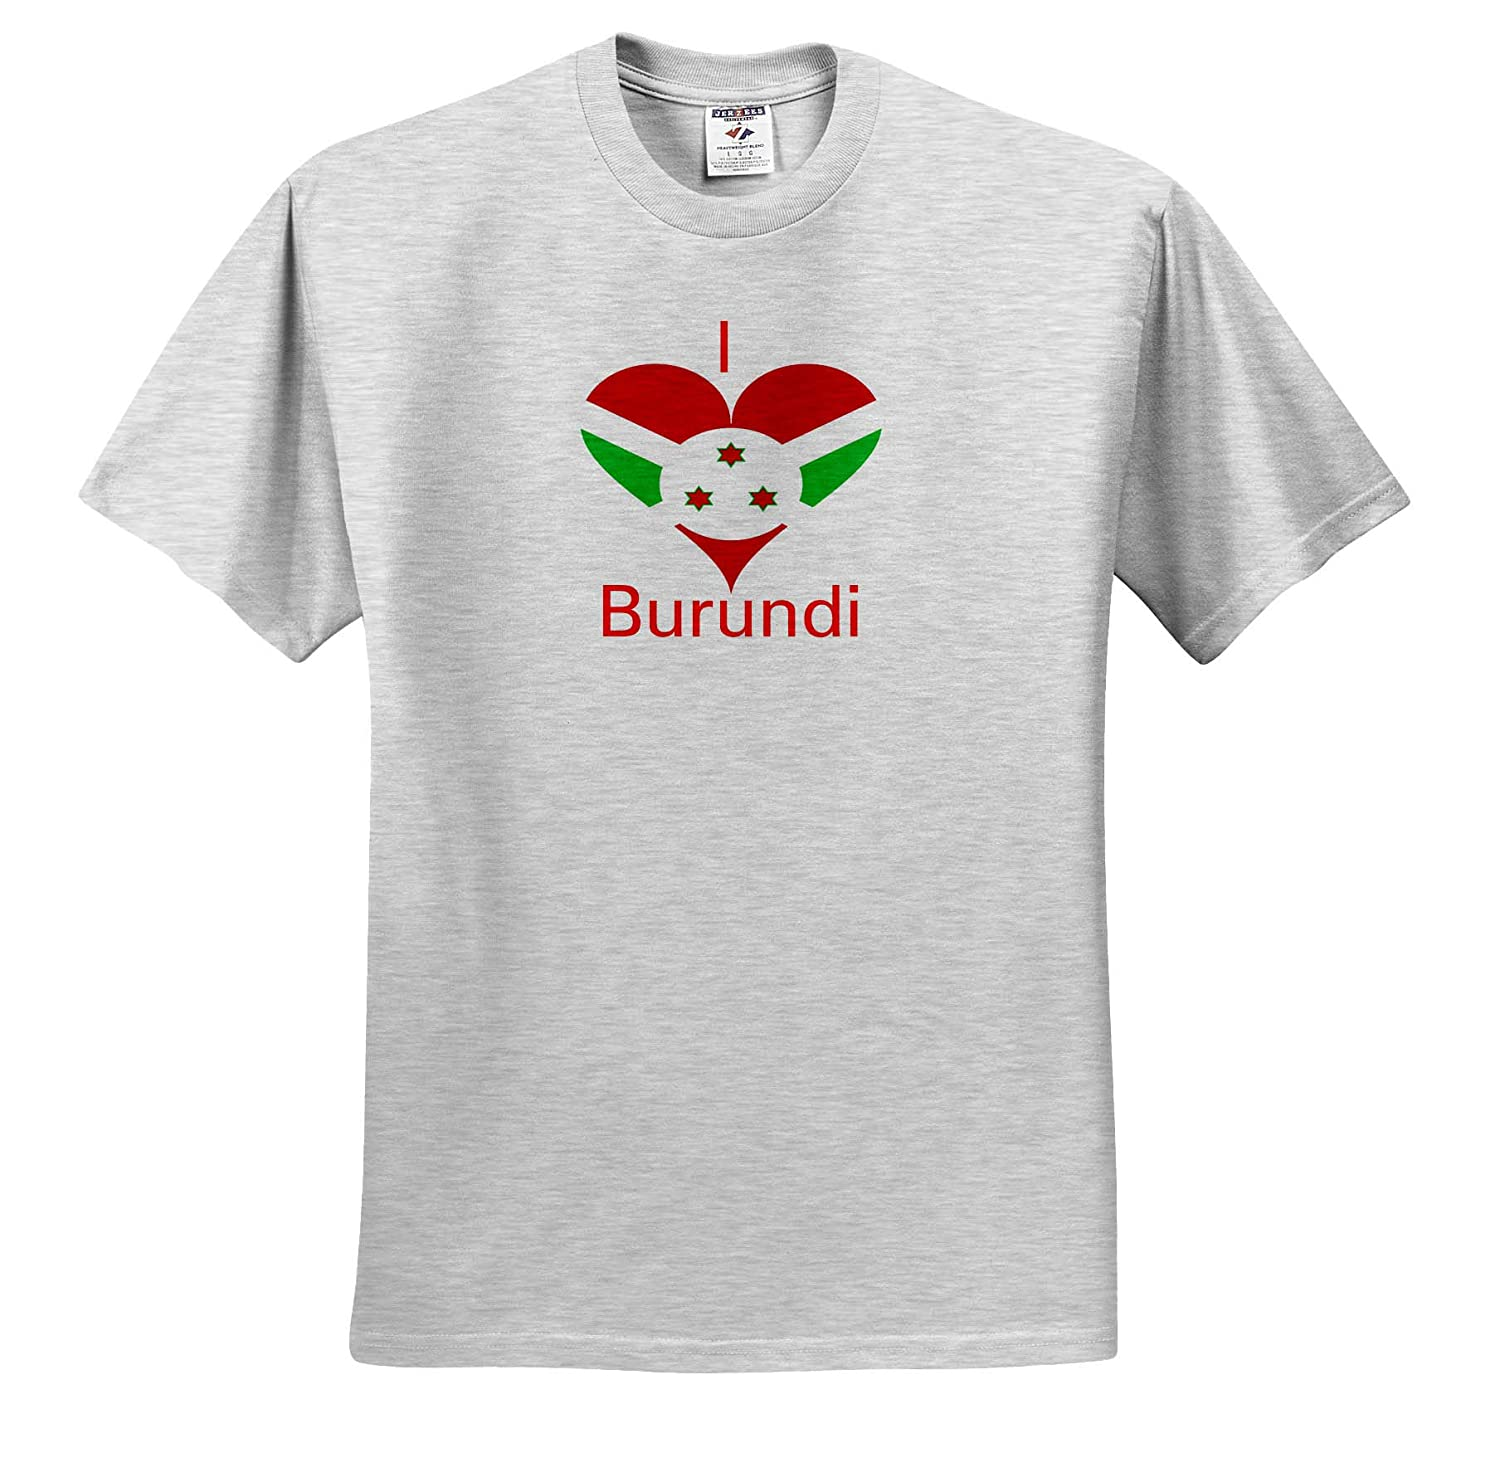 Image of Coat of Arms in Heart with Love for Burundi 3dRose Lens Art by Florene T-Shirts Coat of Arms in Heart